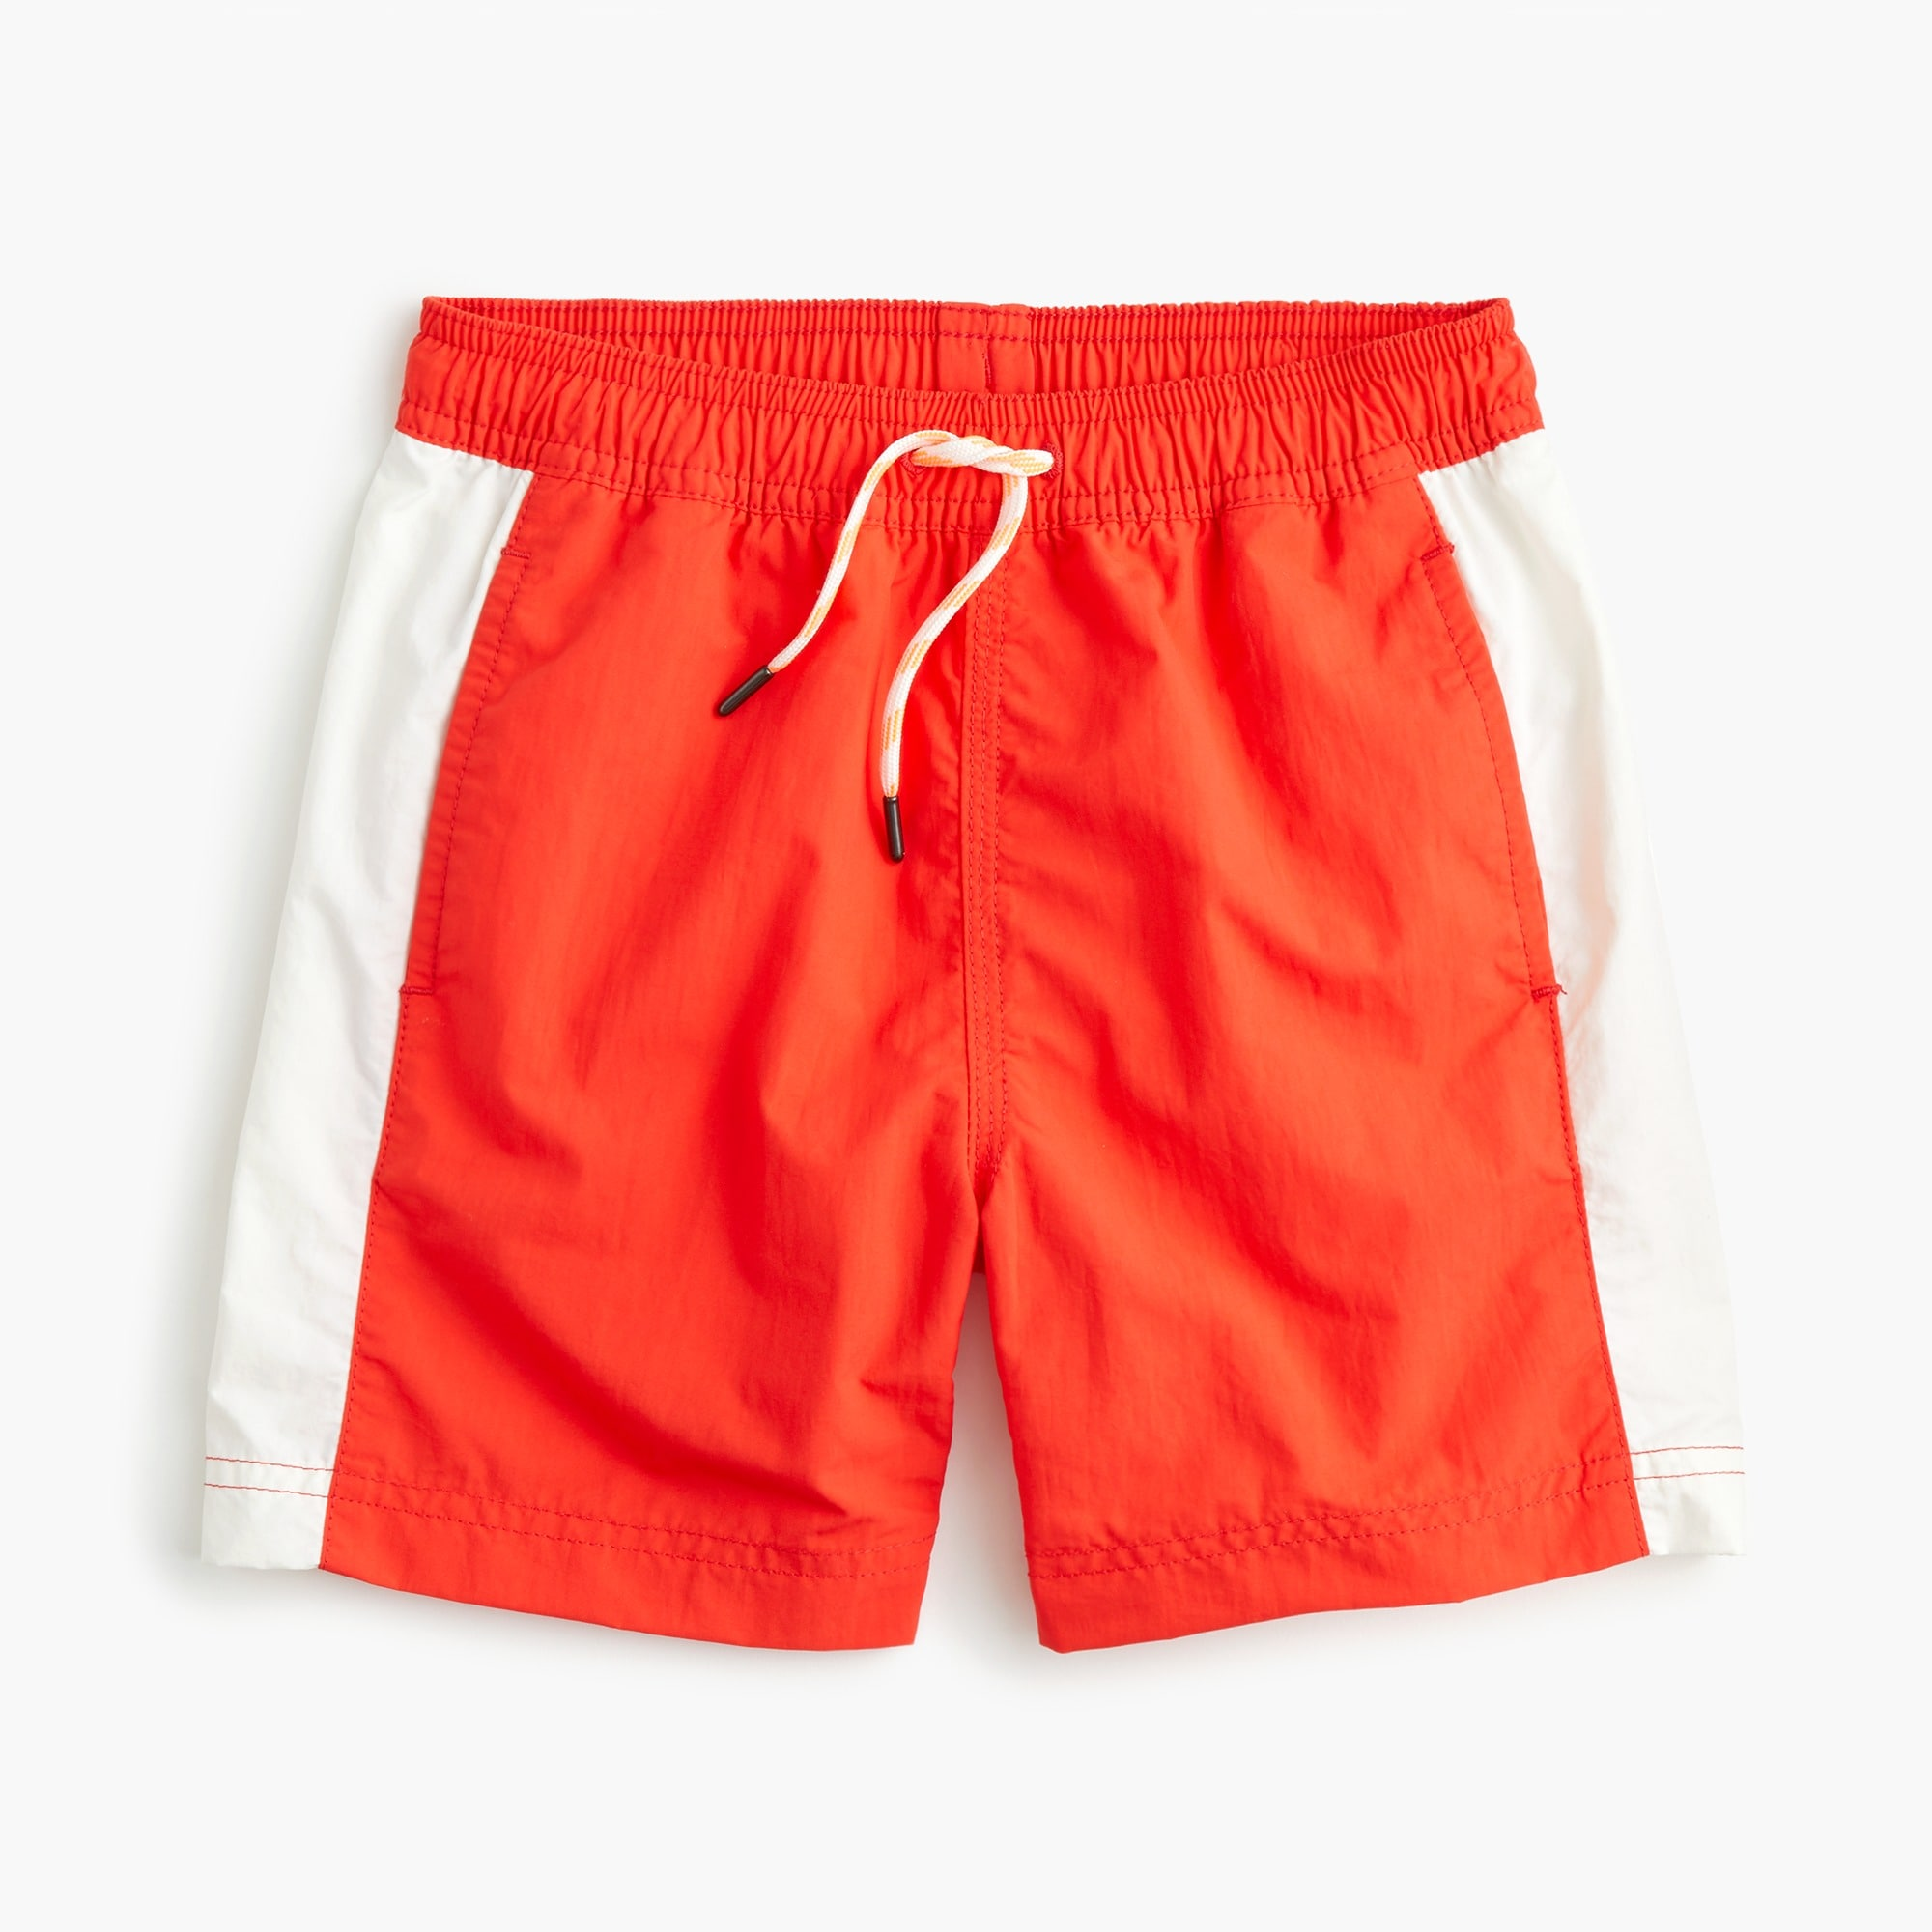 boys Boys' swim trunk with side stripes